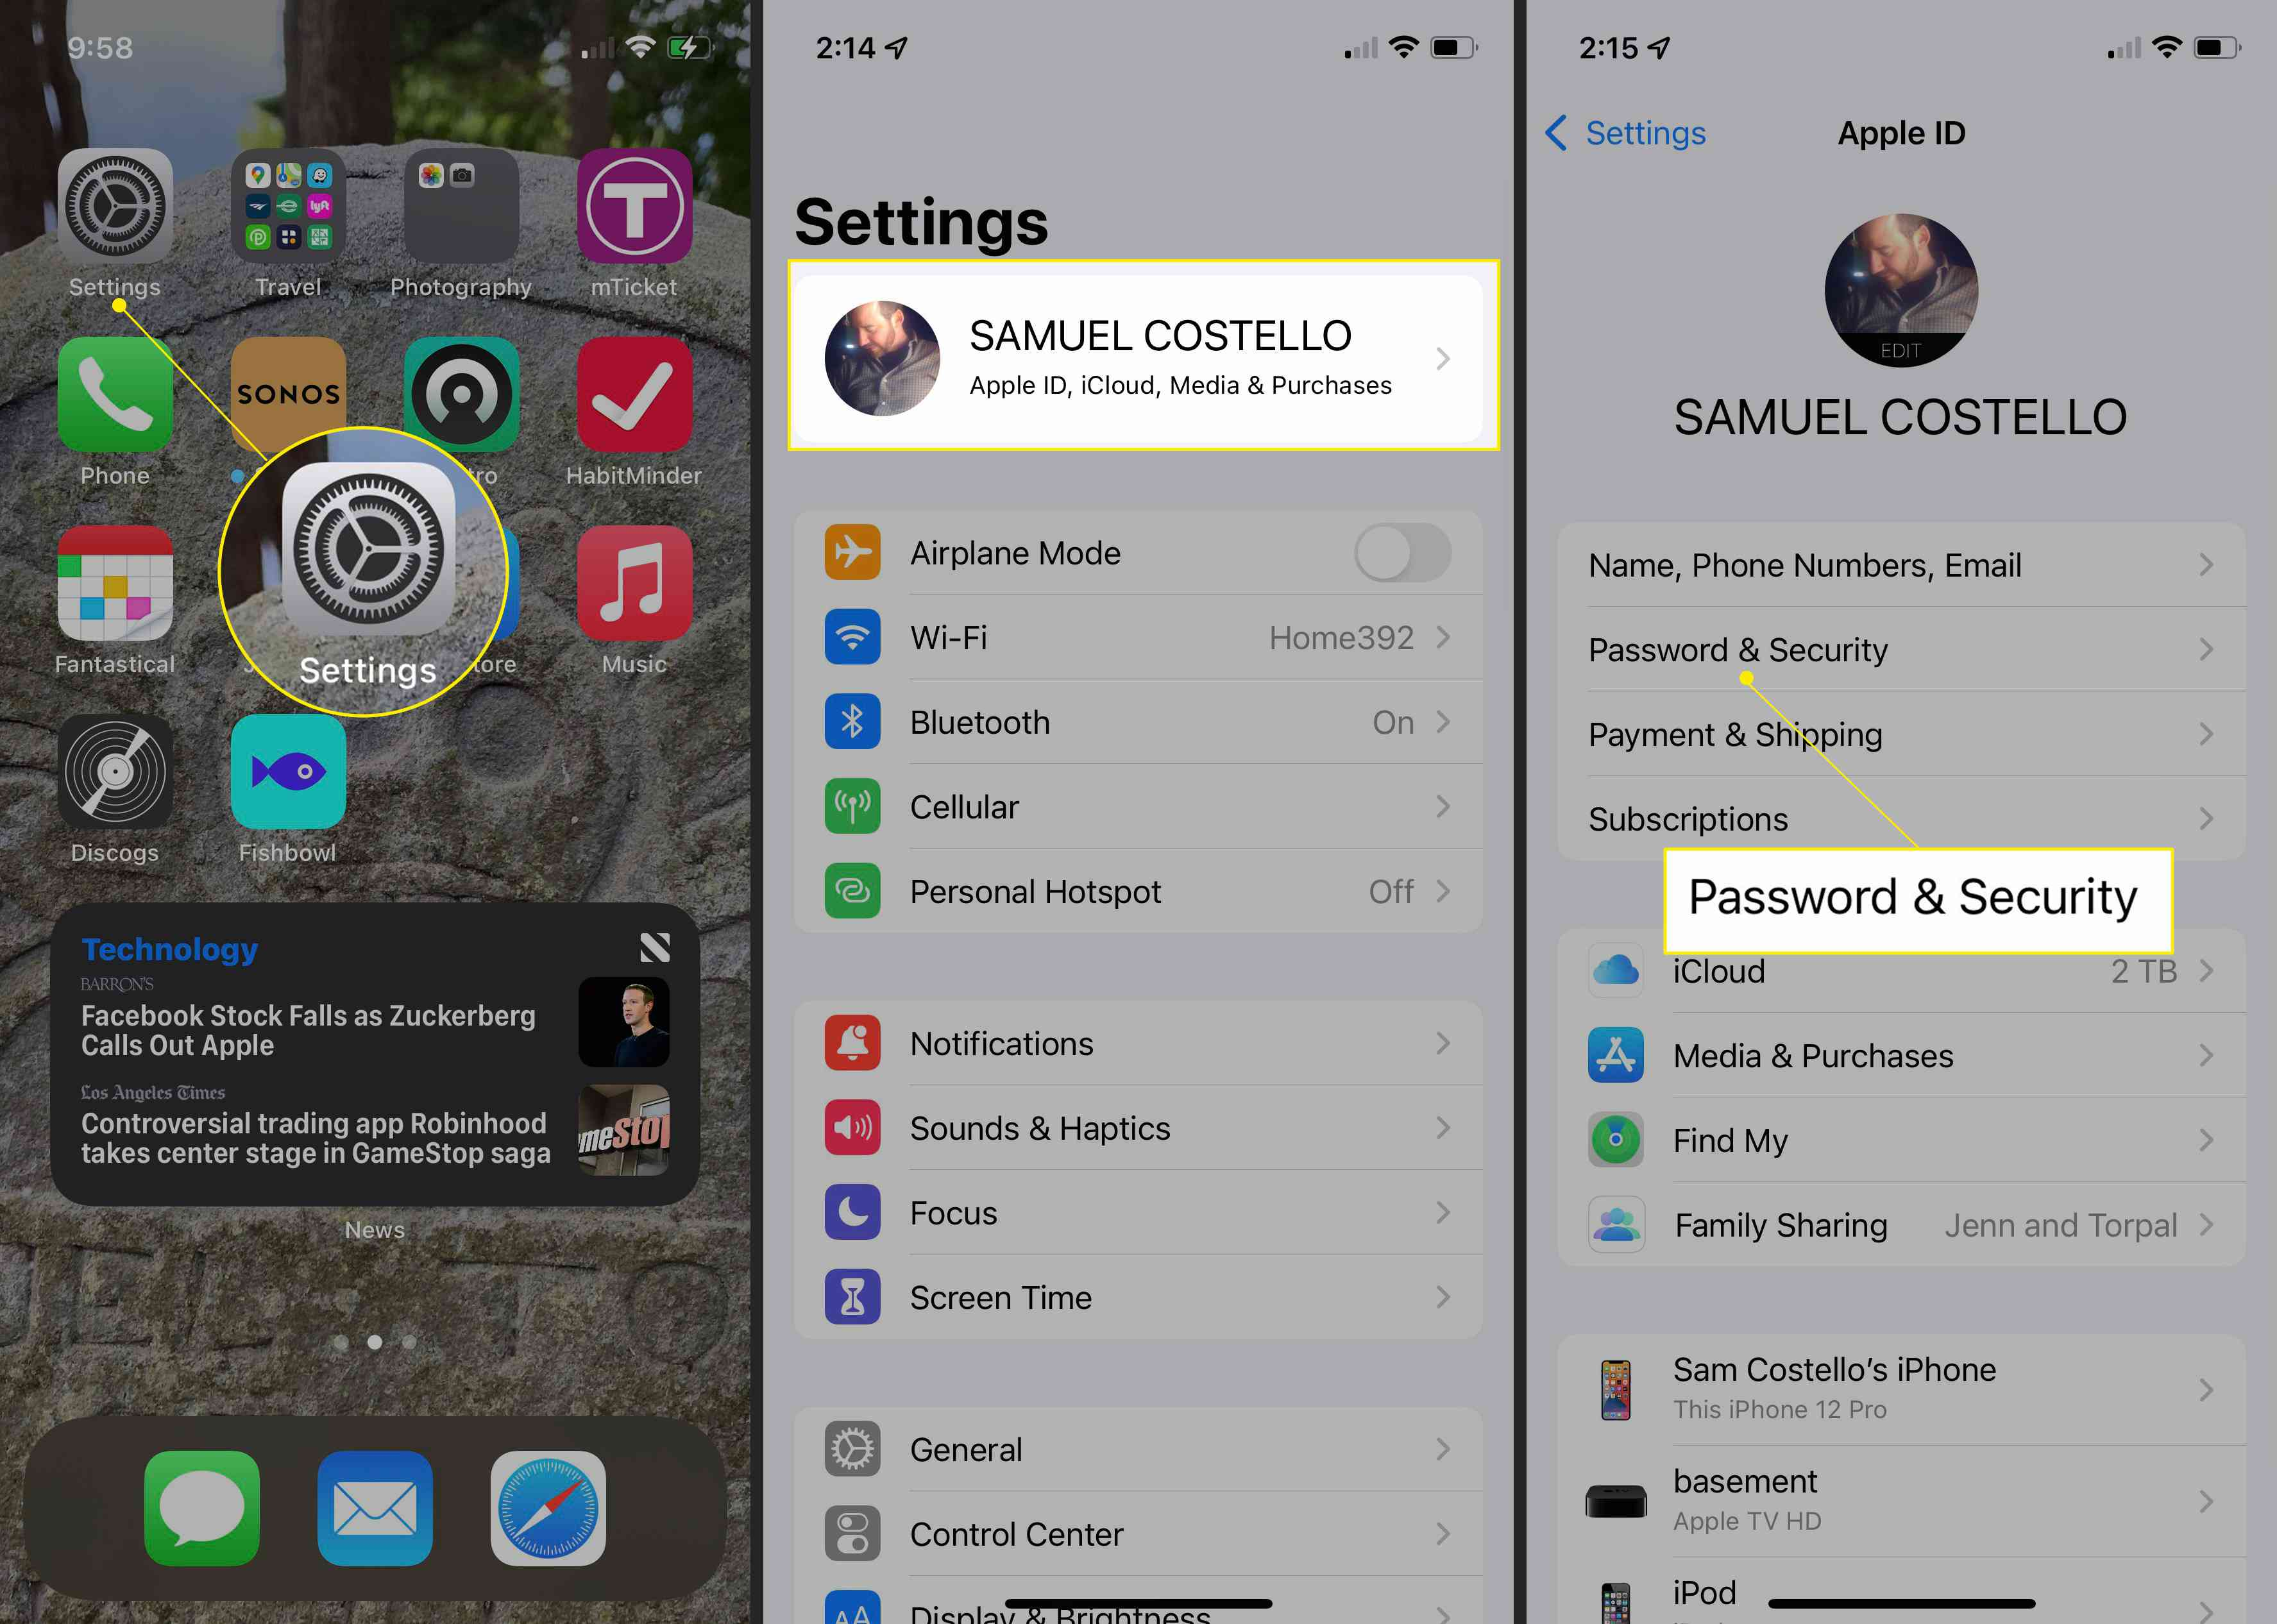 iPhone with Settings, Account ID name, and Password & Security highlighted